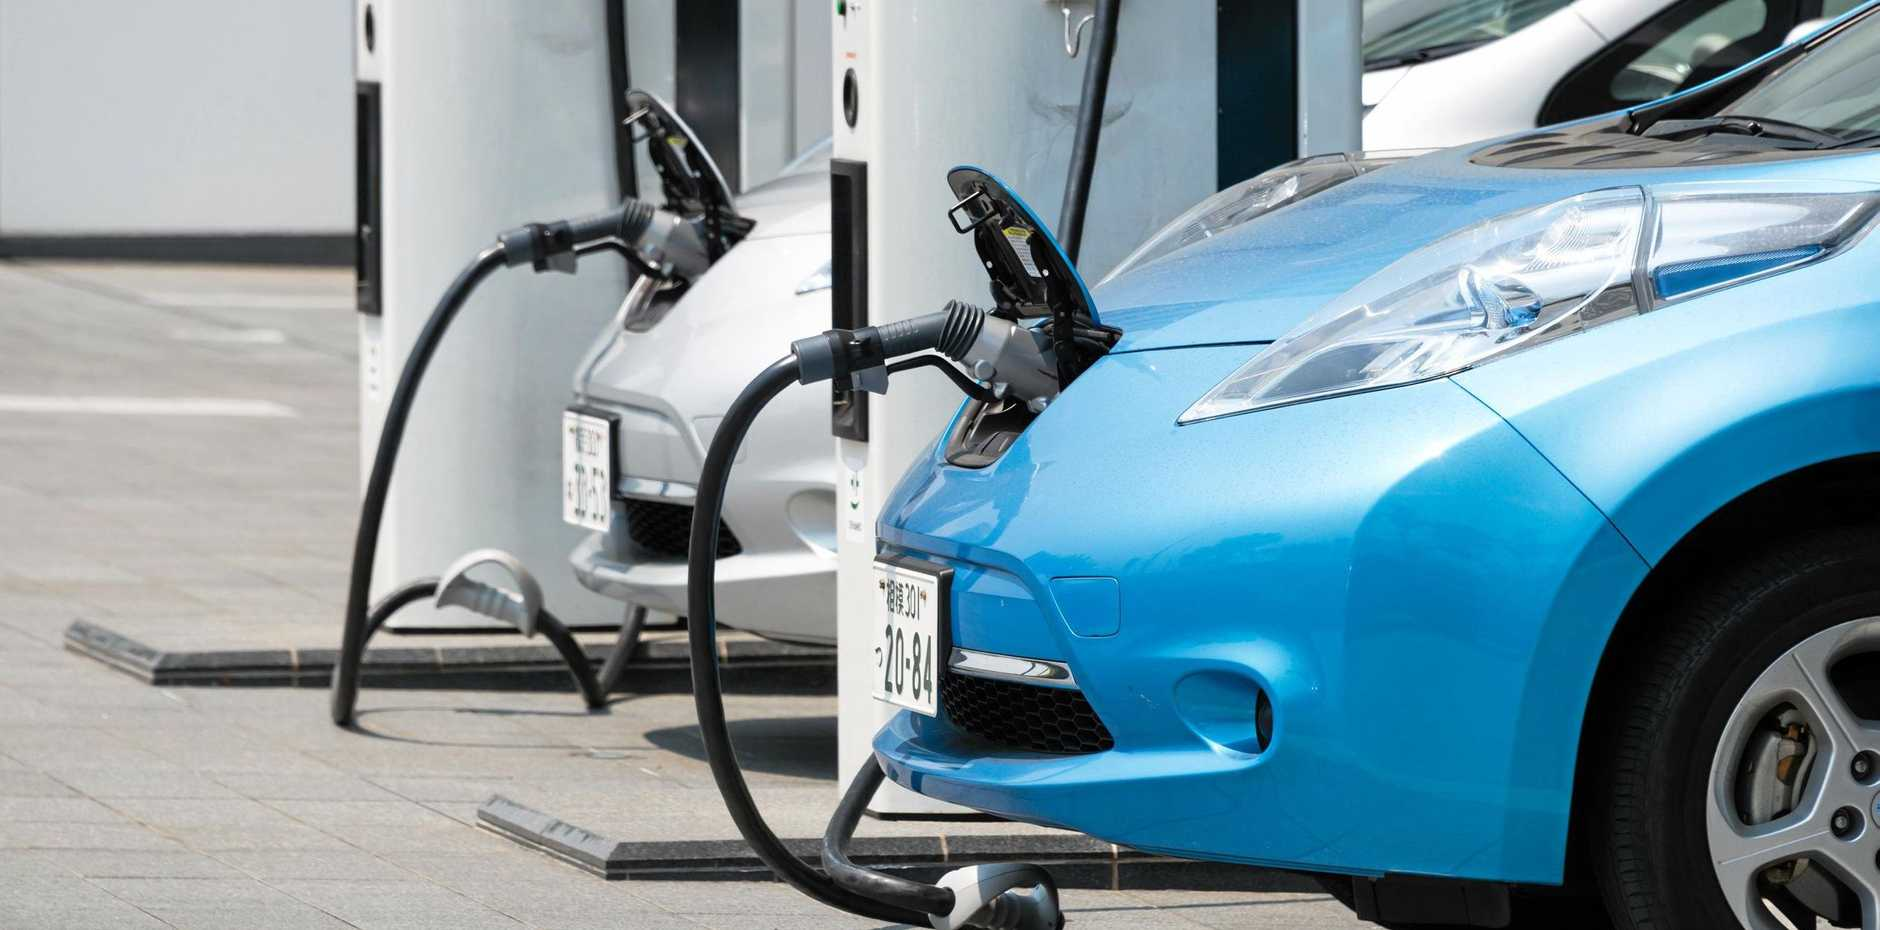 ELECTRIC CARS: There is no need to panic yet about the change from petrol to electric vehicles.